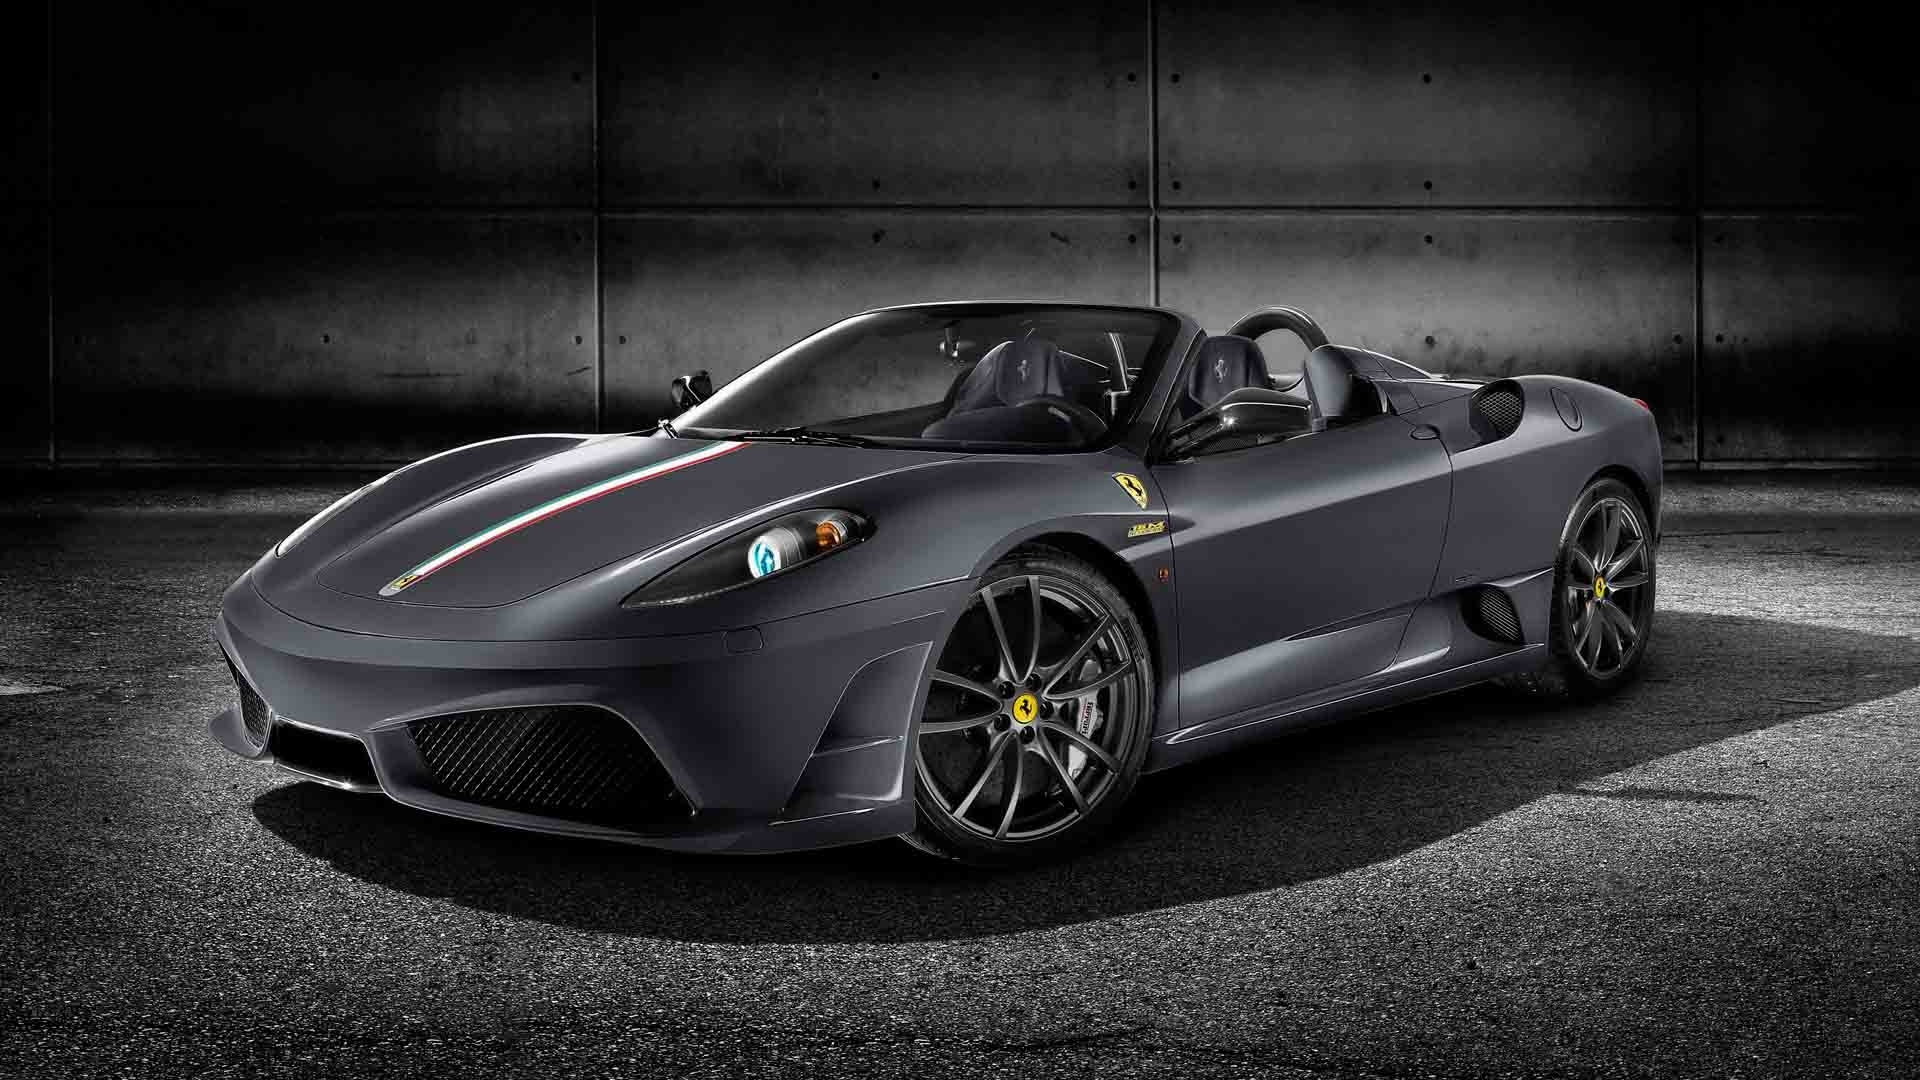 10 Top Exotic Cars Wallpaper Hd Full Hd 1920 1080 For Pc Background